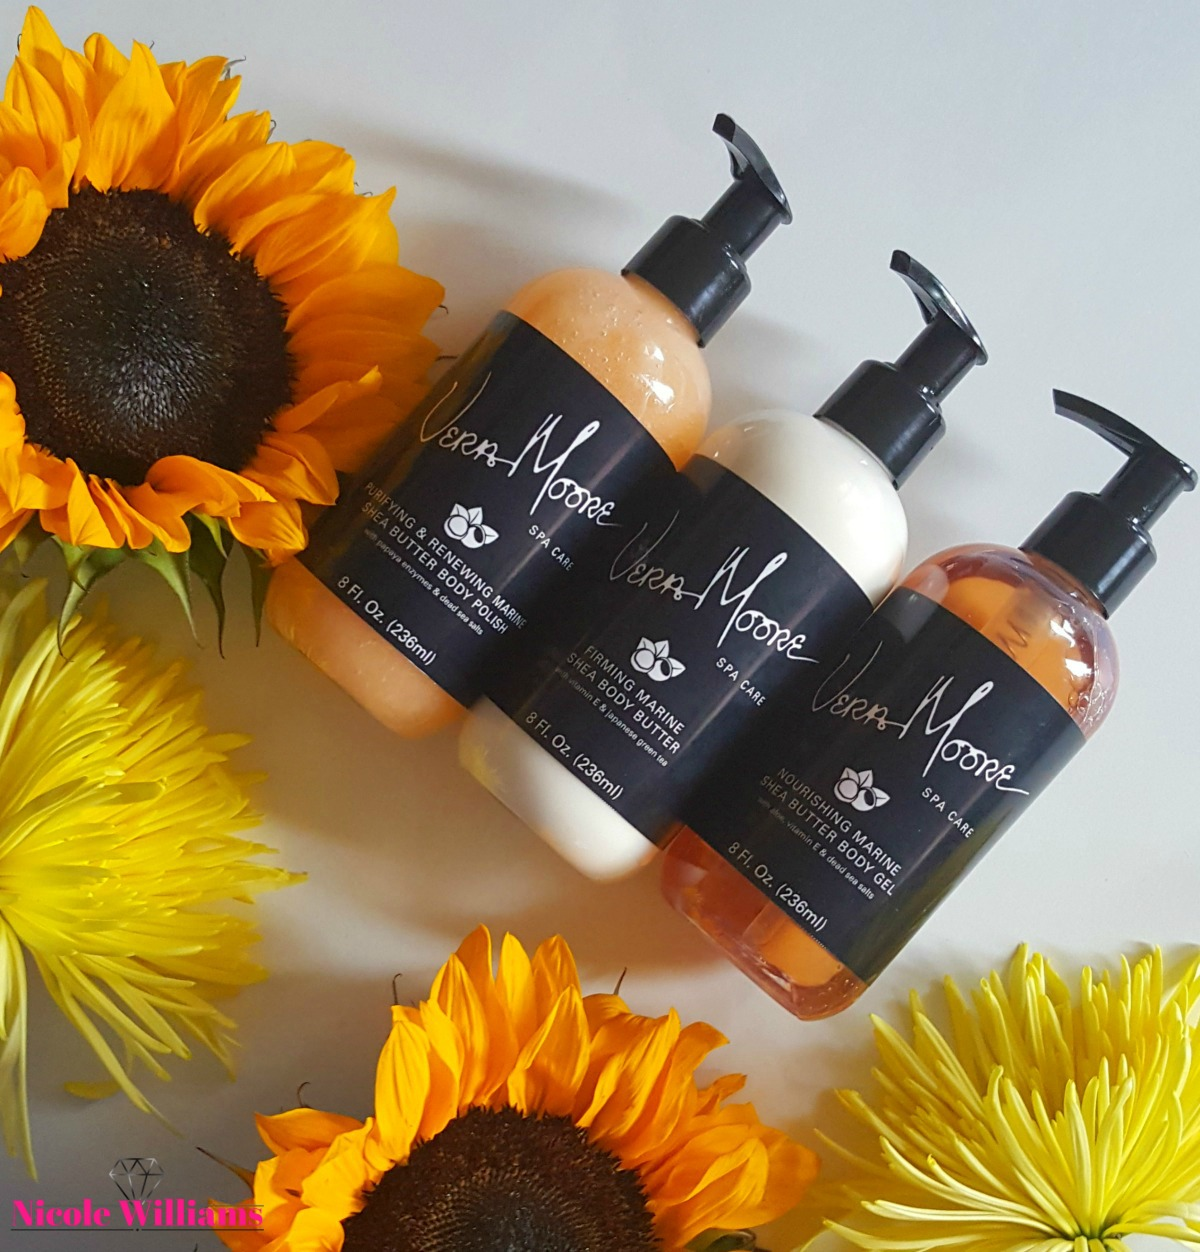 Vera Moore Spa Trio My latestObsession. #skincare #beauty #veramoorecosmetics